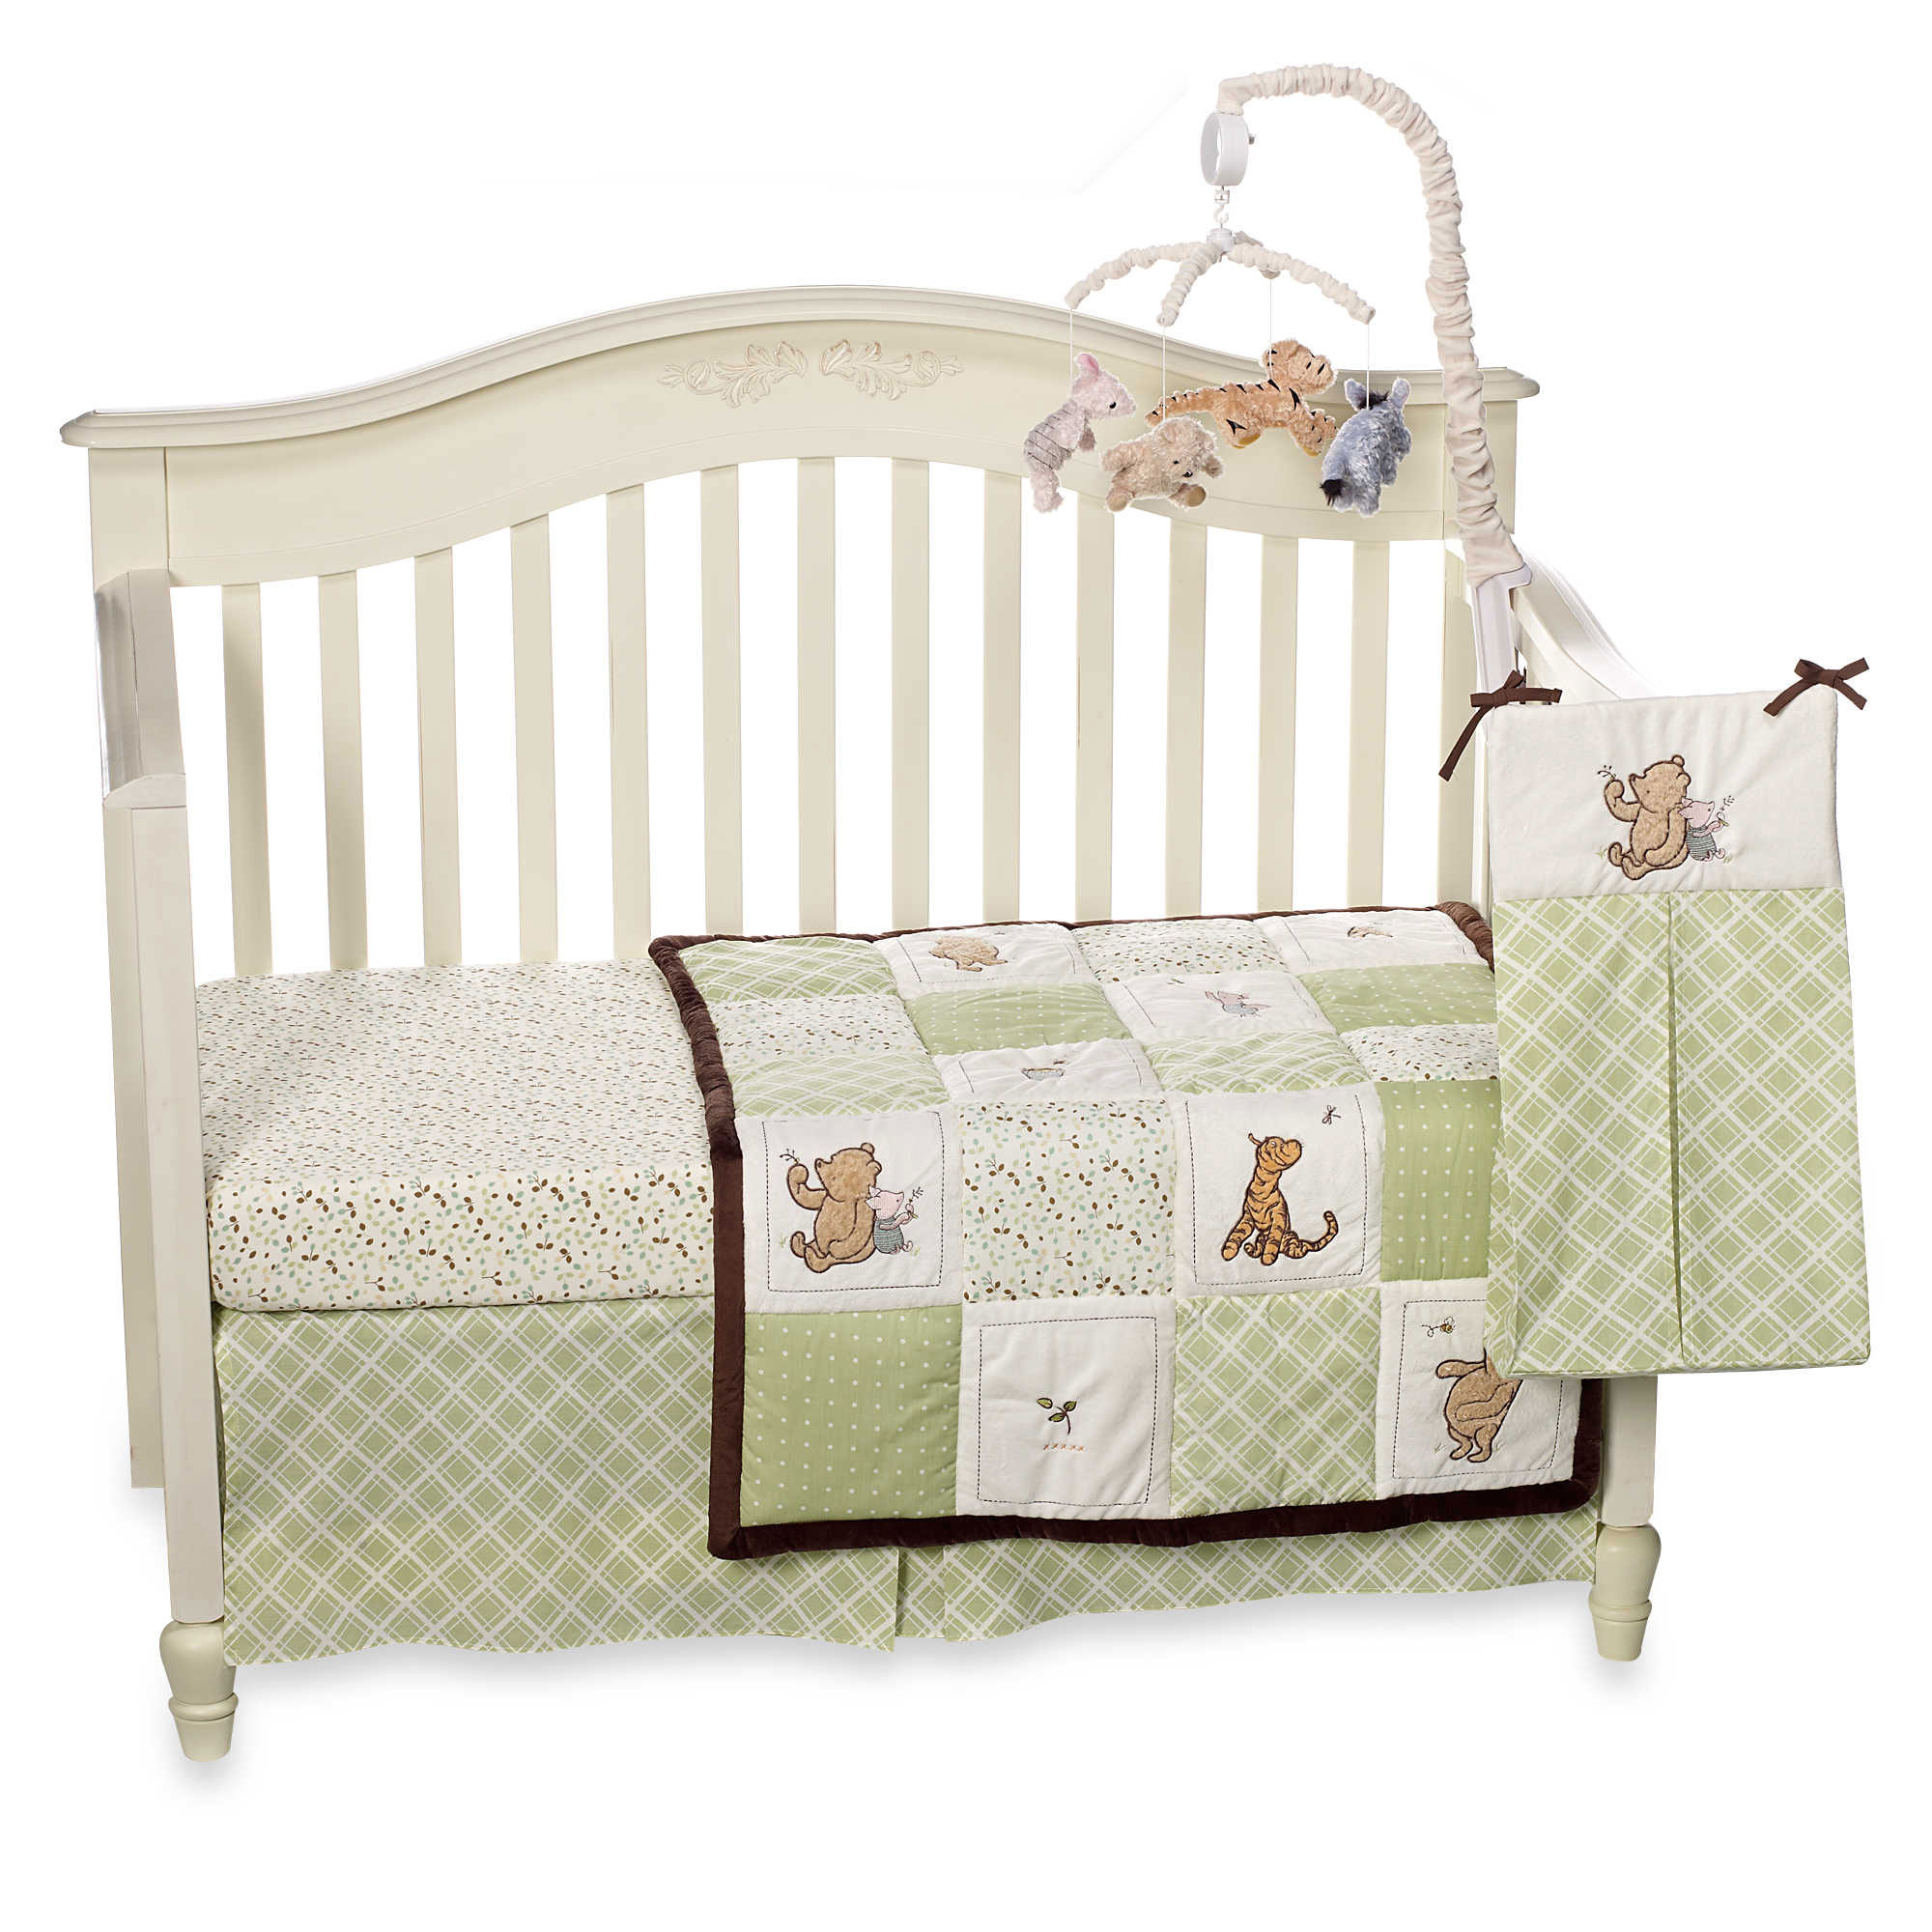 Baby Crib Bedding Set by Disney My Friend Pooh Collection Classic Pooh 4 Piece Set by Disney